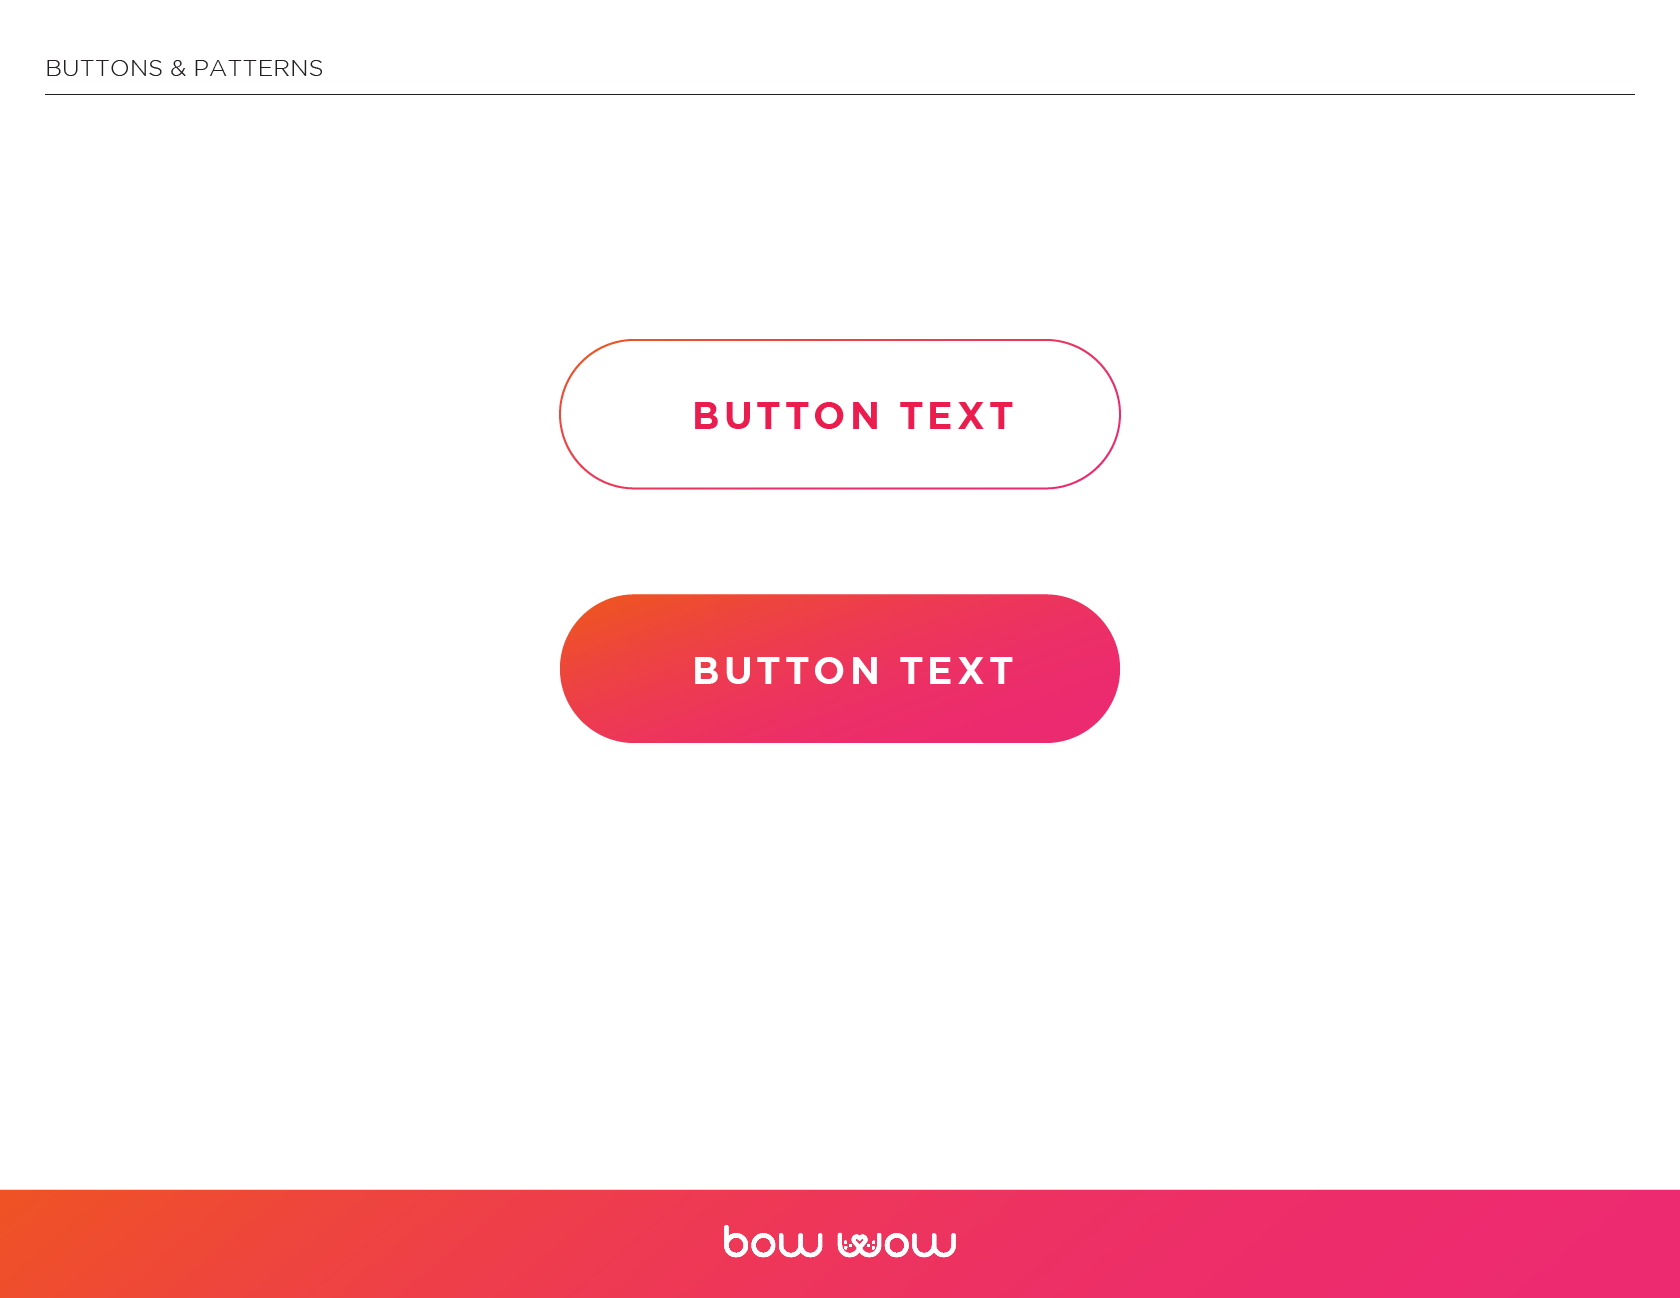 Bow Wow Branding filled and ghost buttons